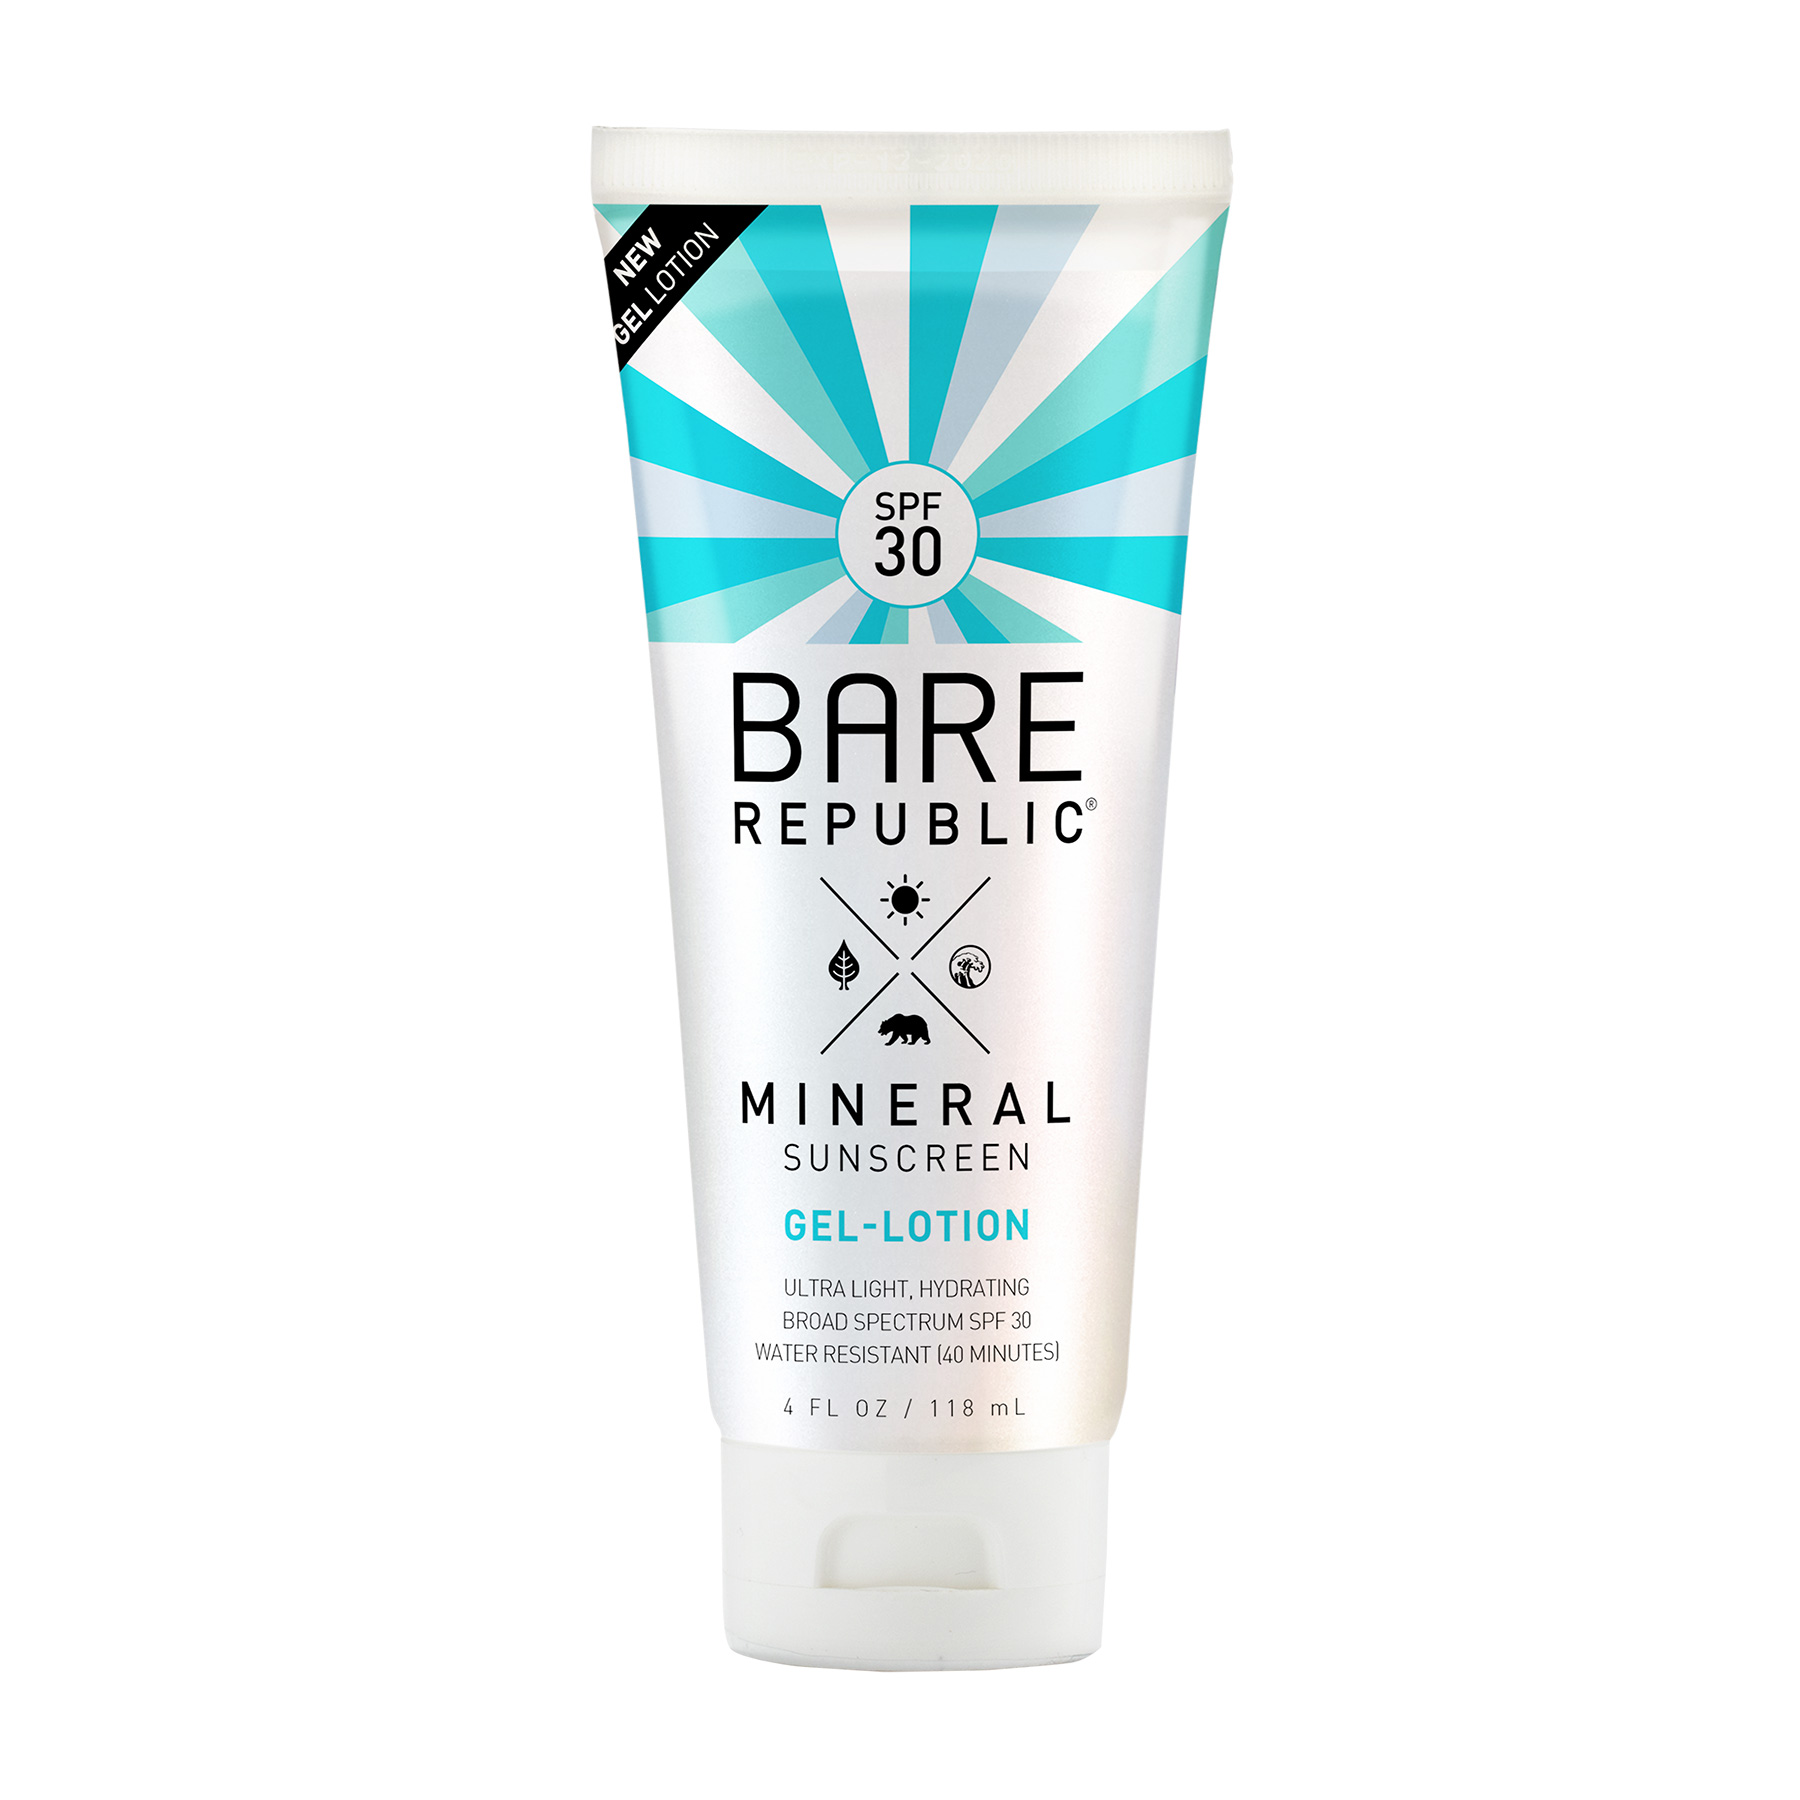 Healthy Summer Skincare: Bare Republic Gel Lotion for Body SPF 30